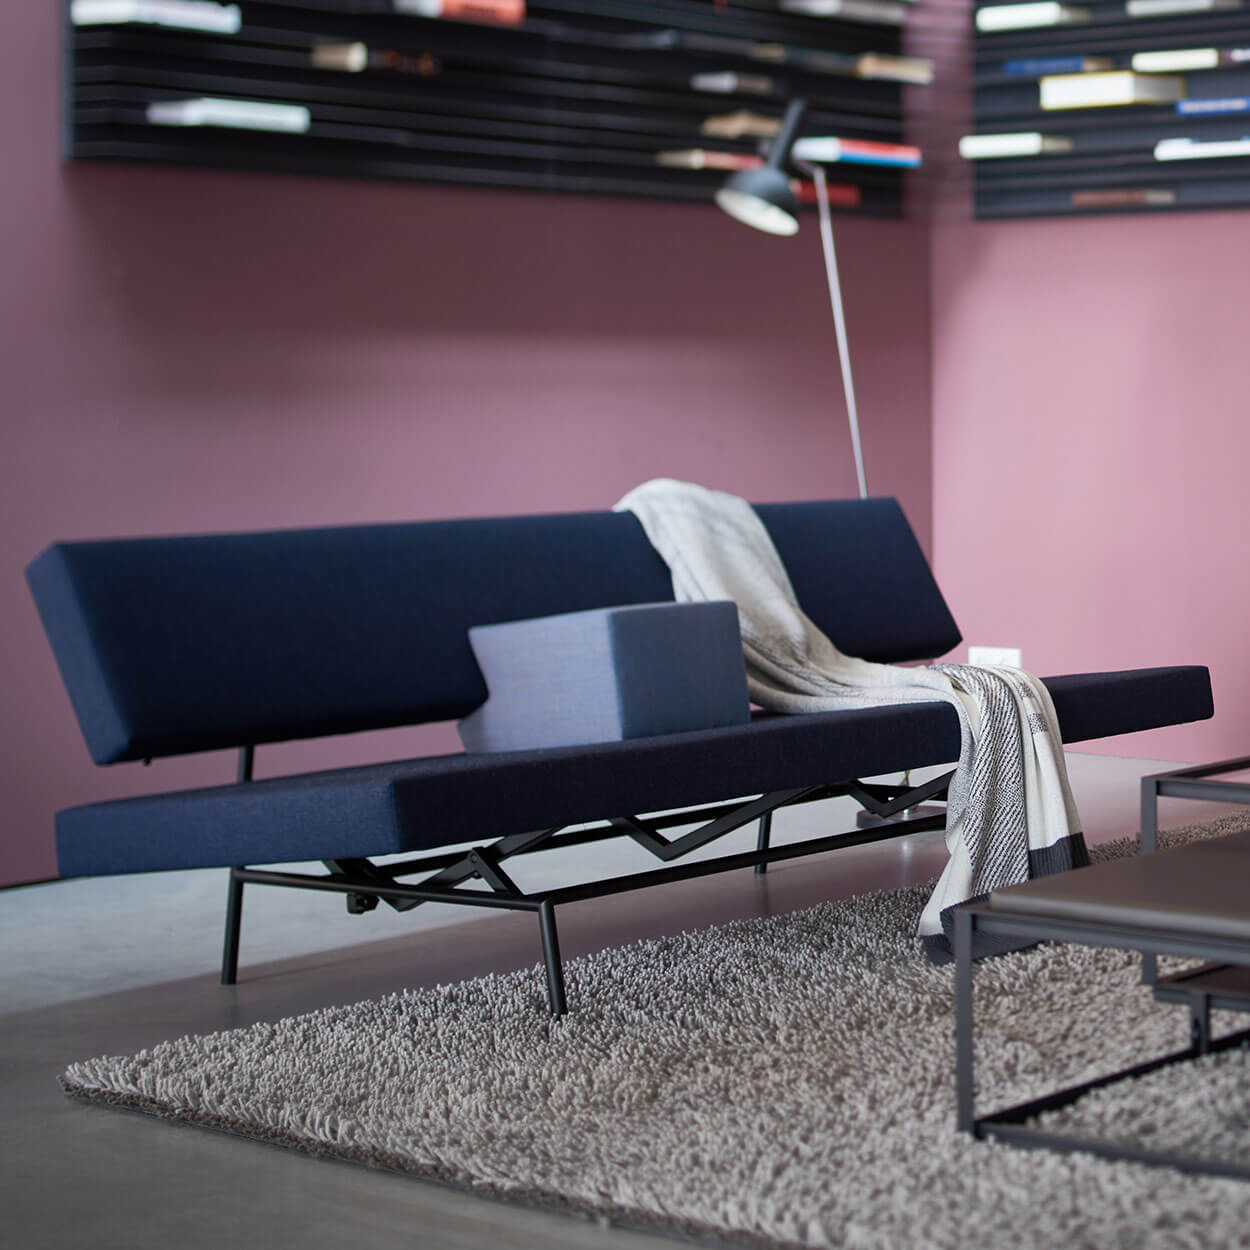 Design Bank Martin Visser.Br 02 Sofa Bed Spectrum Design